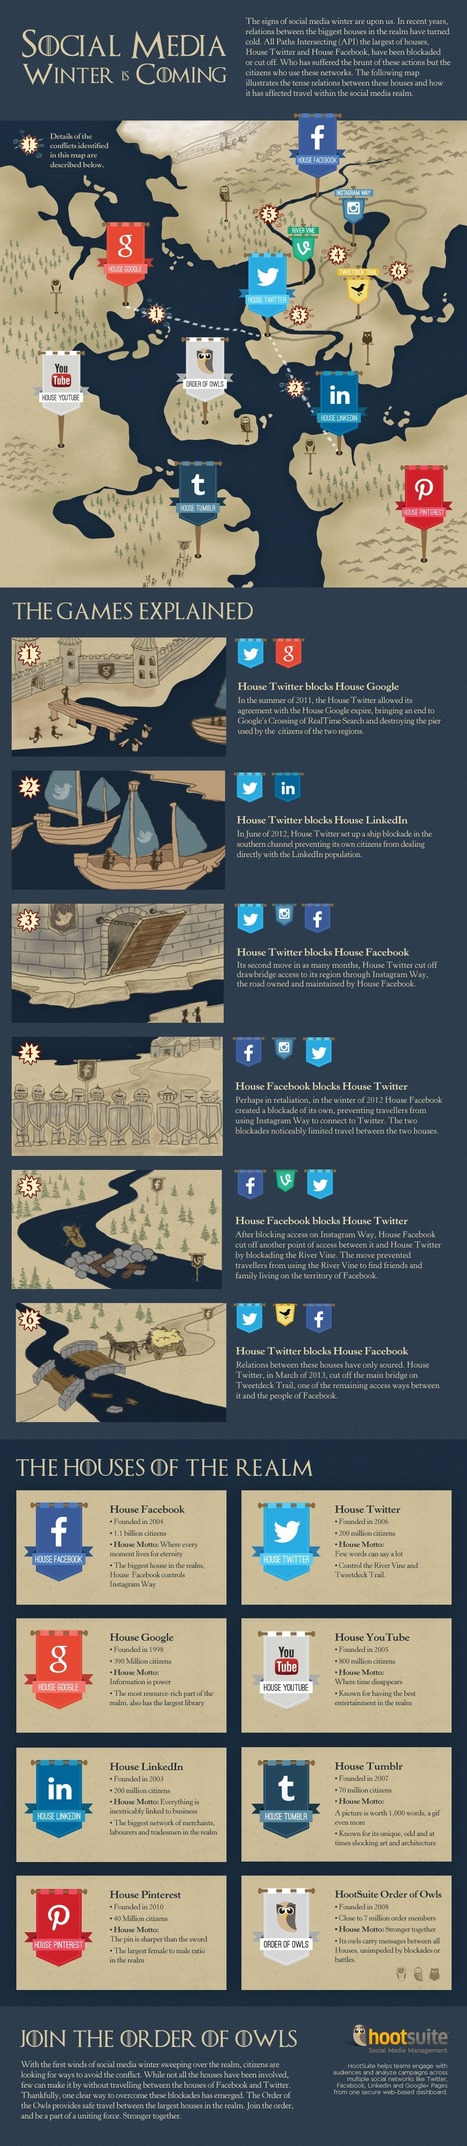 Social Media Wars Told in 'Game of Thrones' Style [INFOGRAPHIC] | Personal Branding and Professional networks | Scoop.it